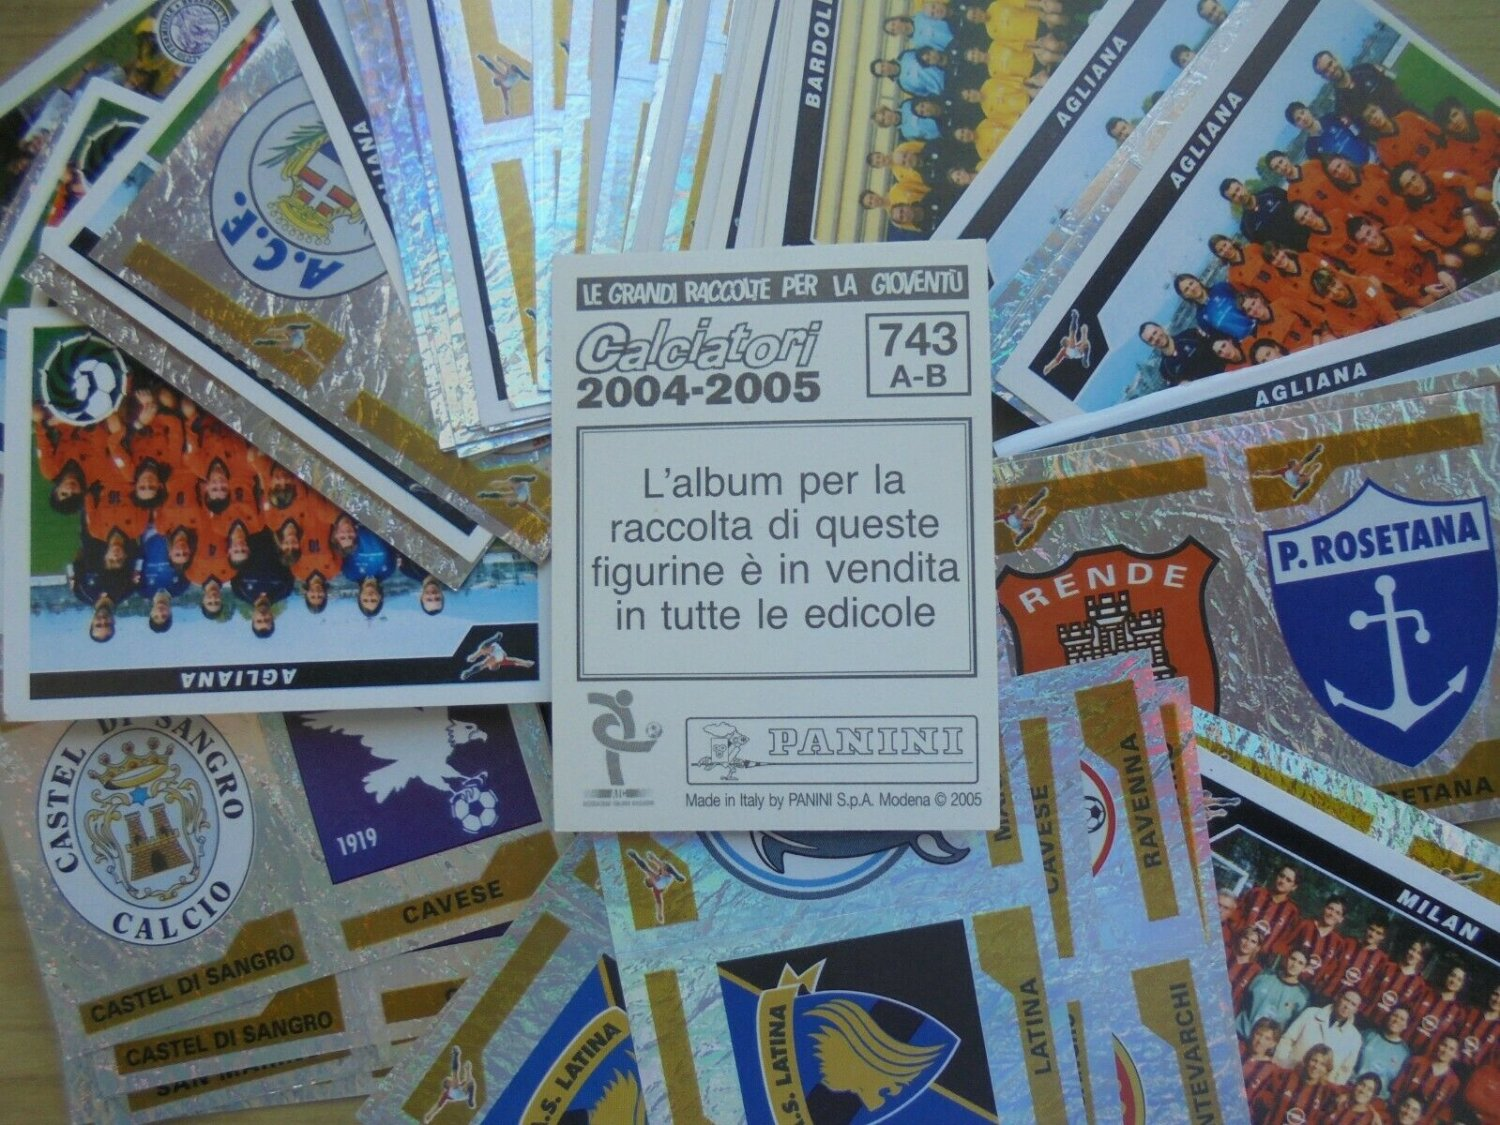 Lotto 400 FIGURINE CALCIATORI PANINI 2004 2005 New stickers pack set All different